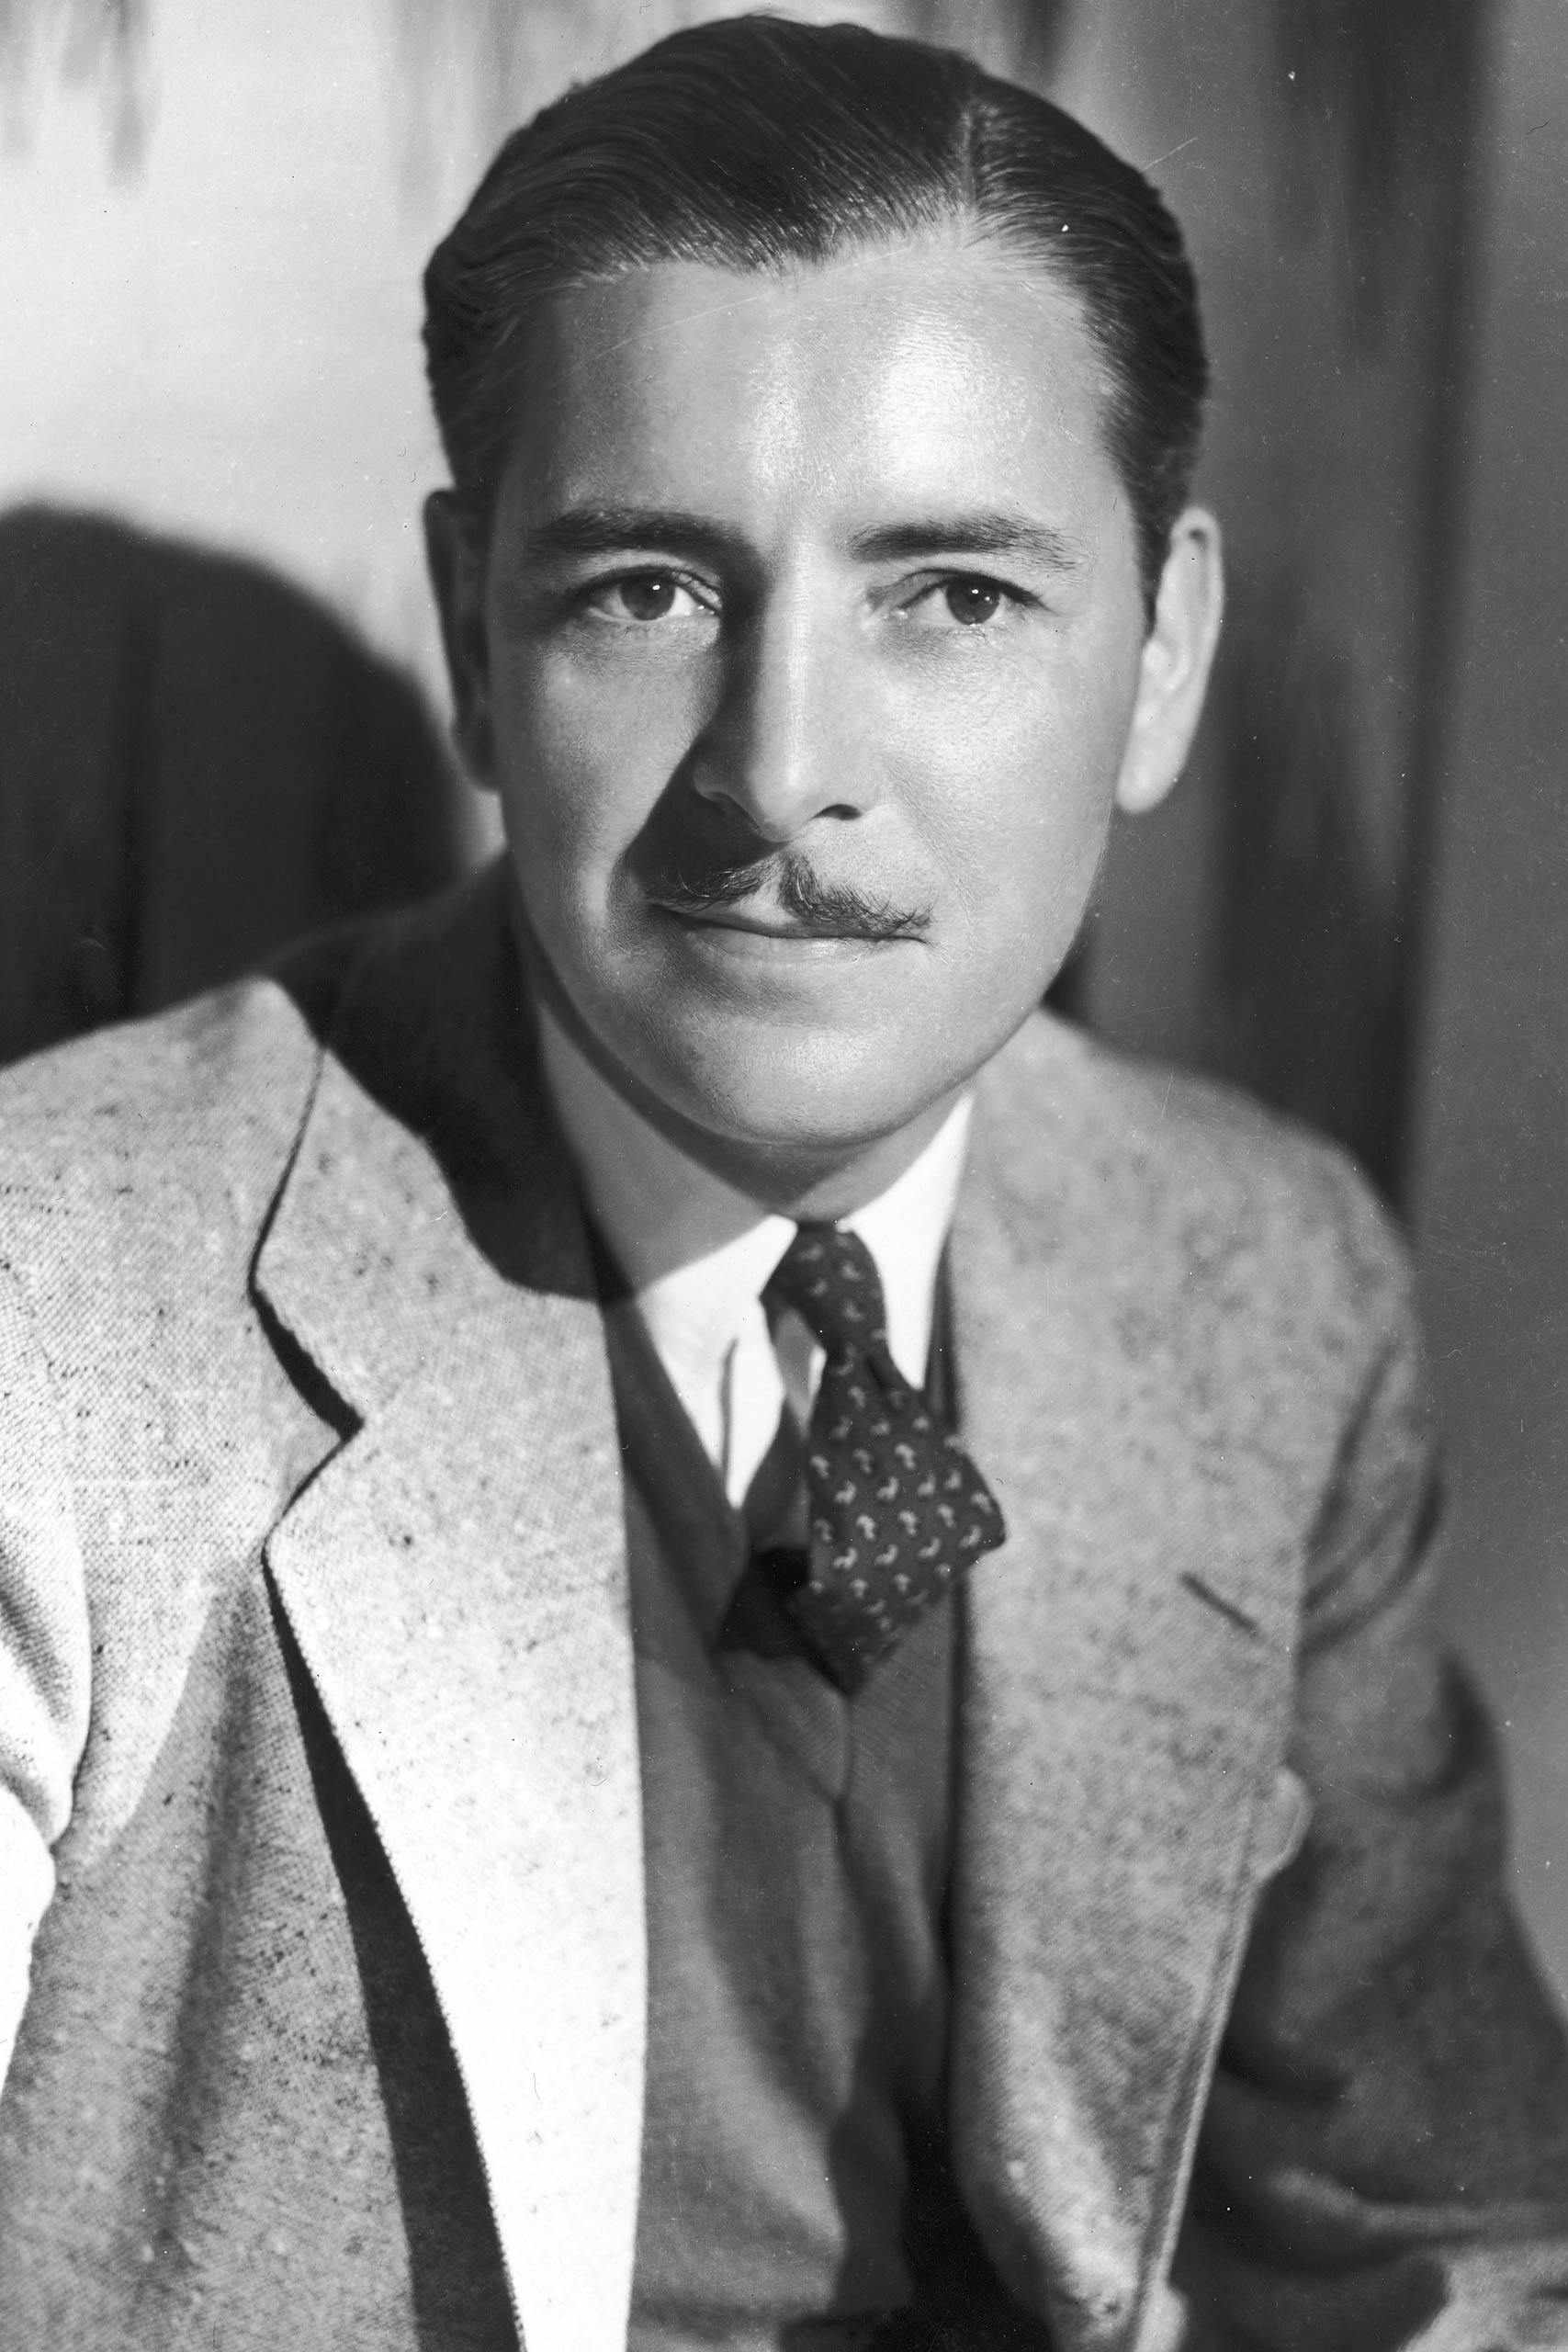 <strong>1948: Ronald Colman - <i>A Double Life</i></strong>